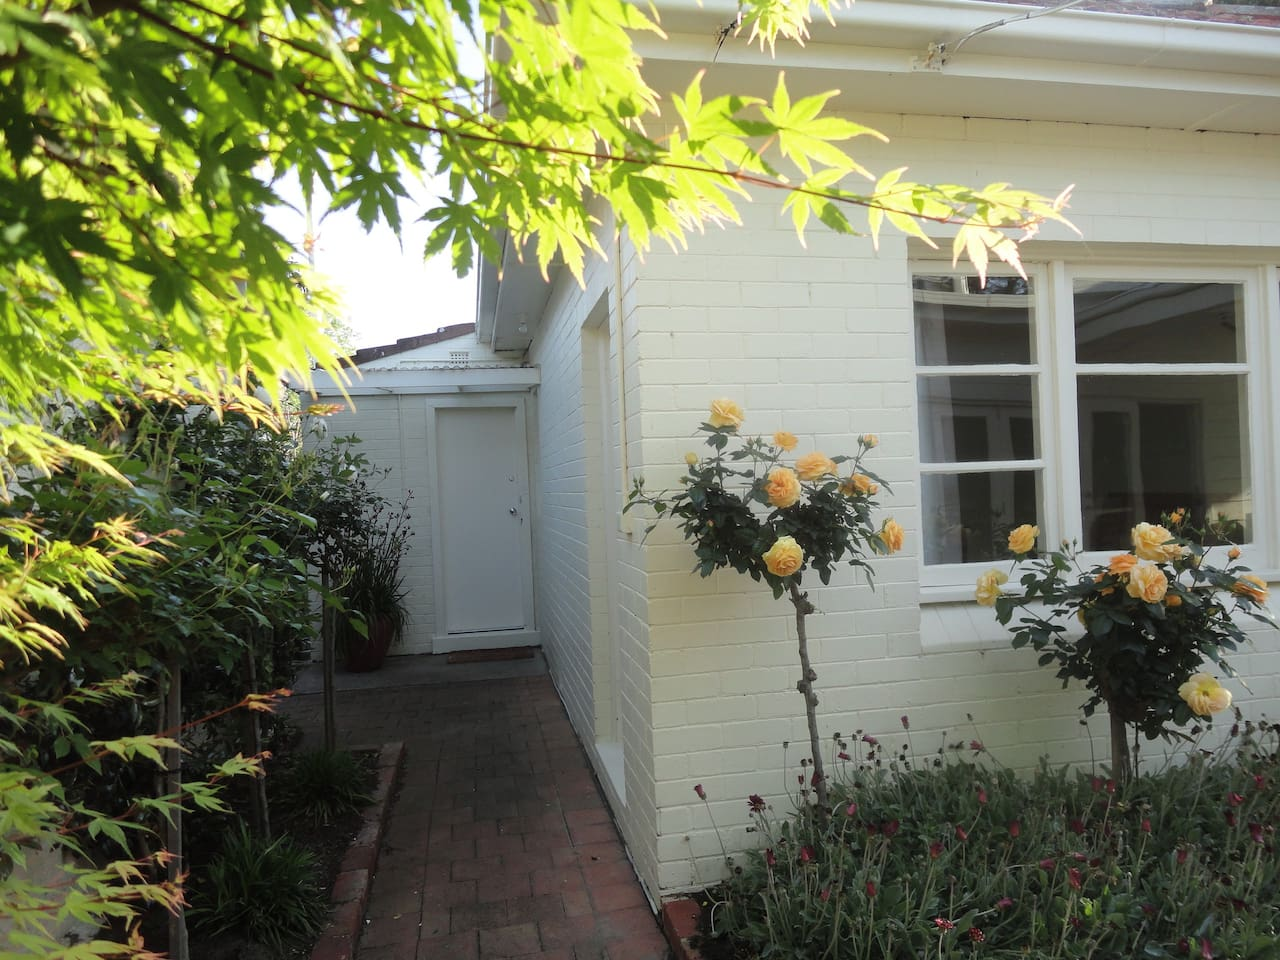 We invite you to stay in this private self contained solid brick one bedroom cottage. It is located at the back of our house, with its own separate entrance along the side of the property. This is a delightful and tranquil setting.